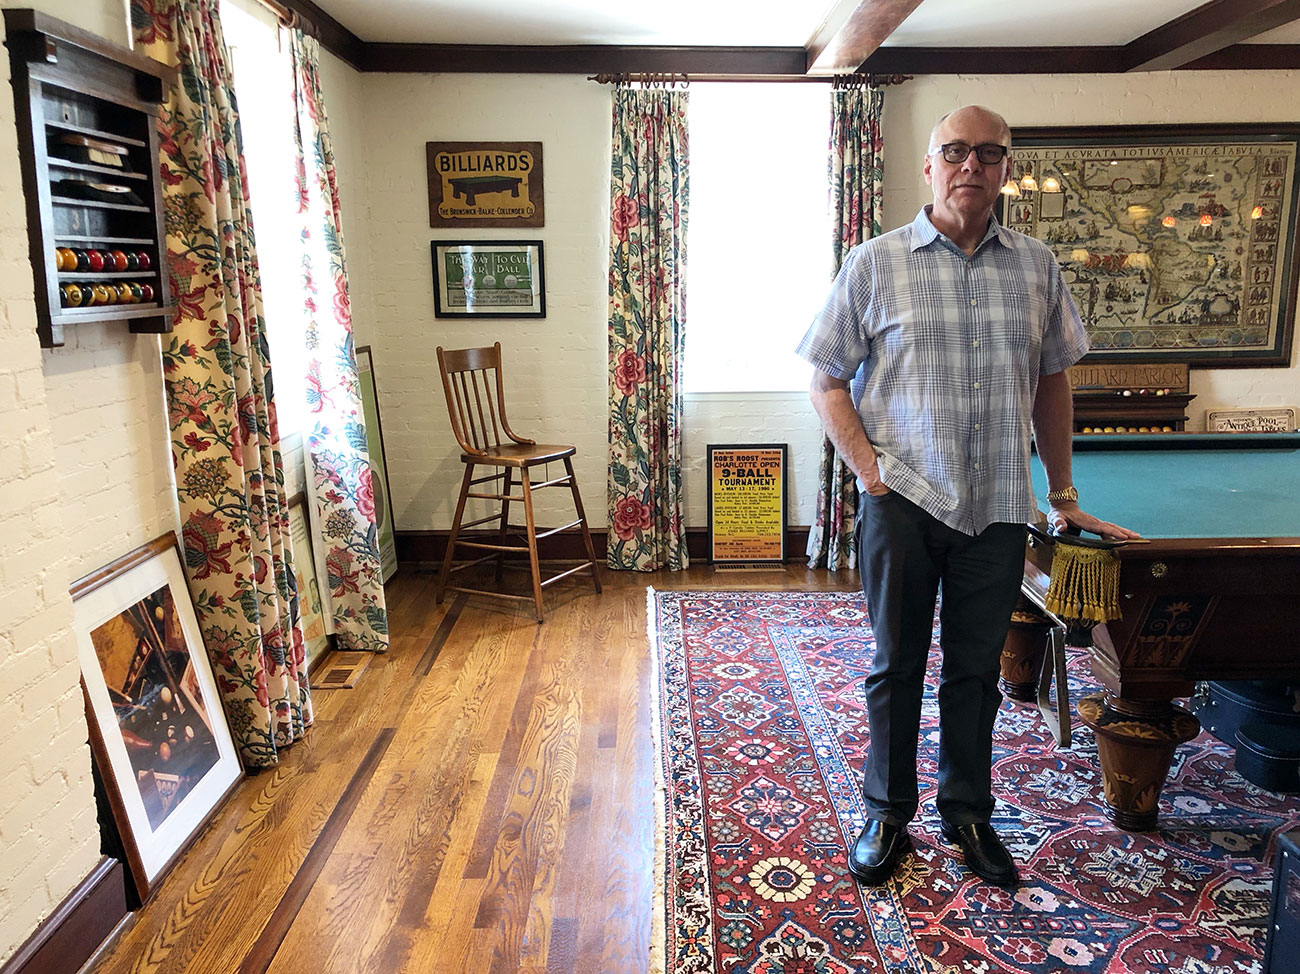 Home Tour: Inside the mysterious 2,800-square-foot merchant's loft above Dilworth Tasting Room